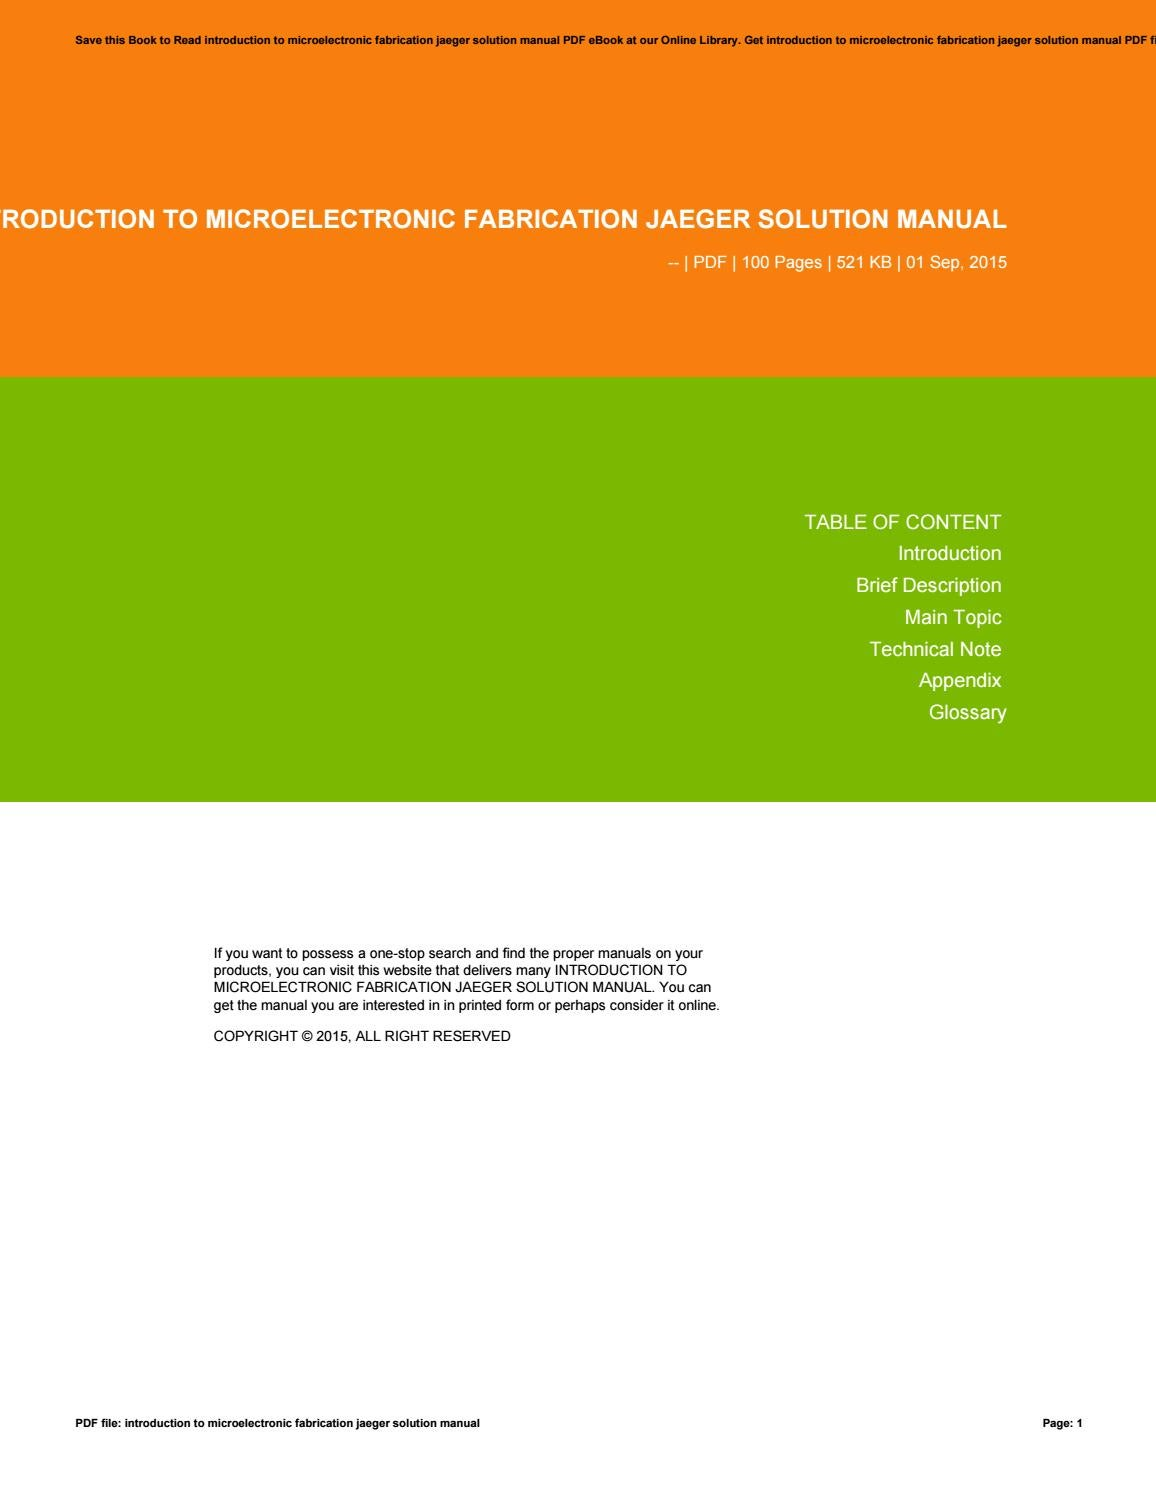 Introduction to microelectronic fabrication jaeger solution manual by  barryogorman36 - issuu